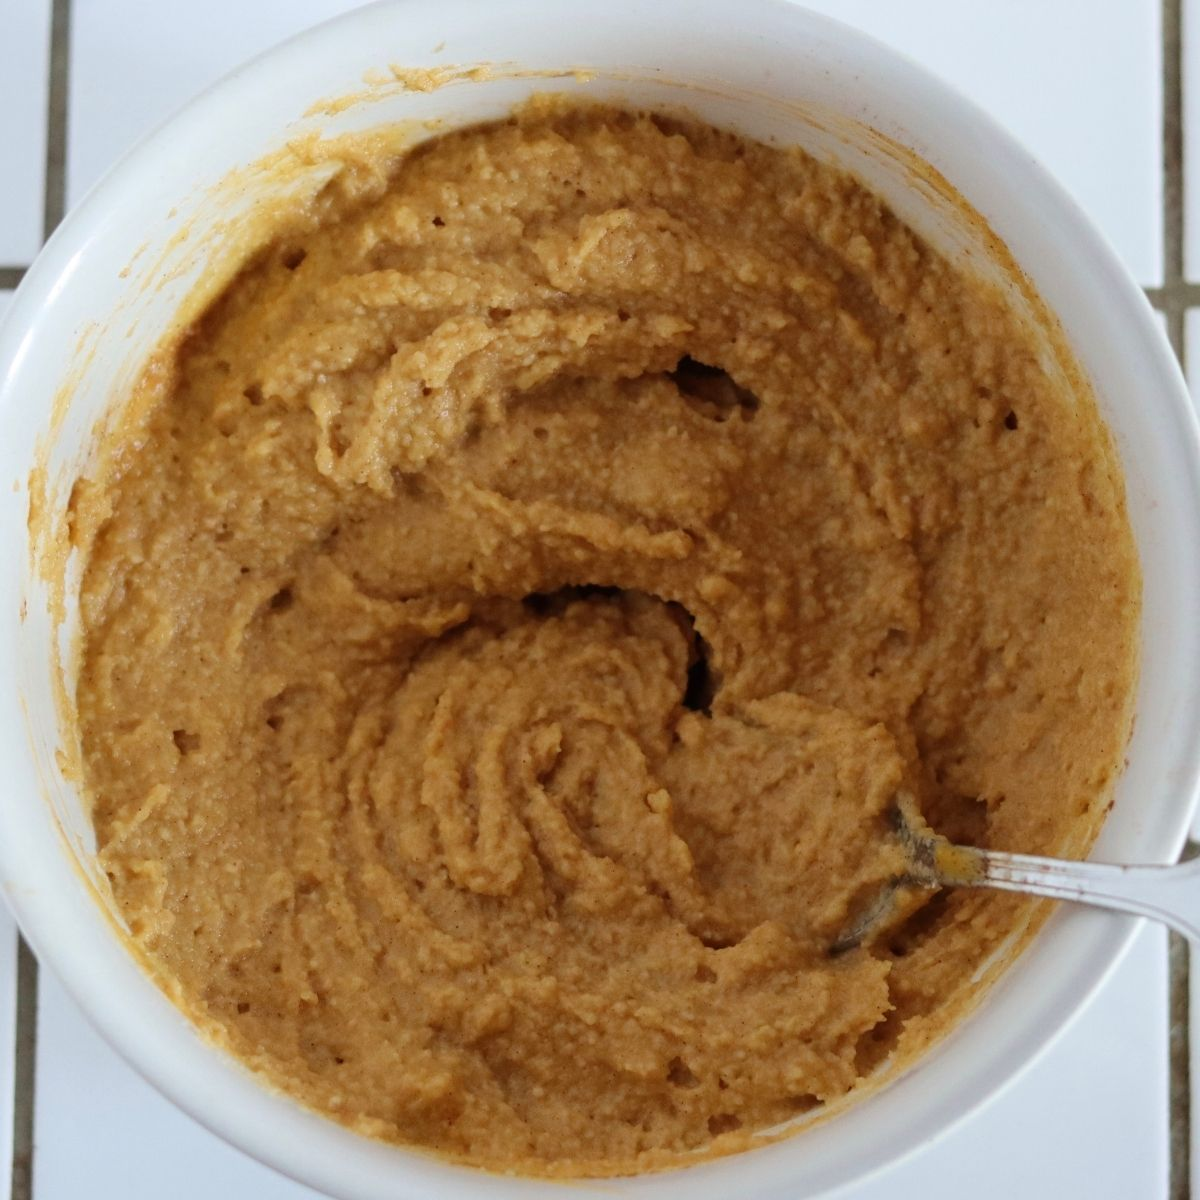 the paleo pumpkin muffins batter mixed with a spoon in a white bowl